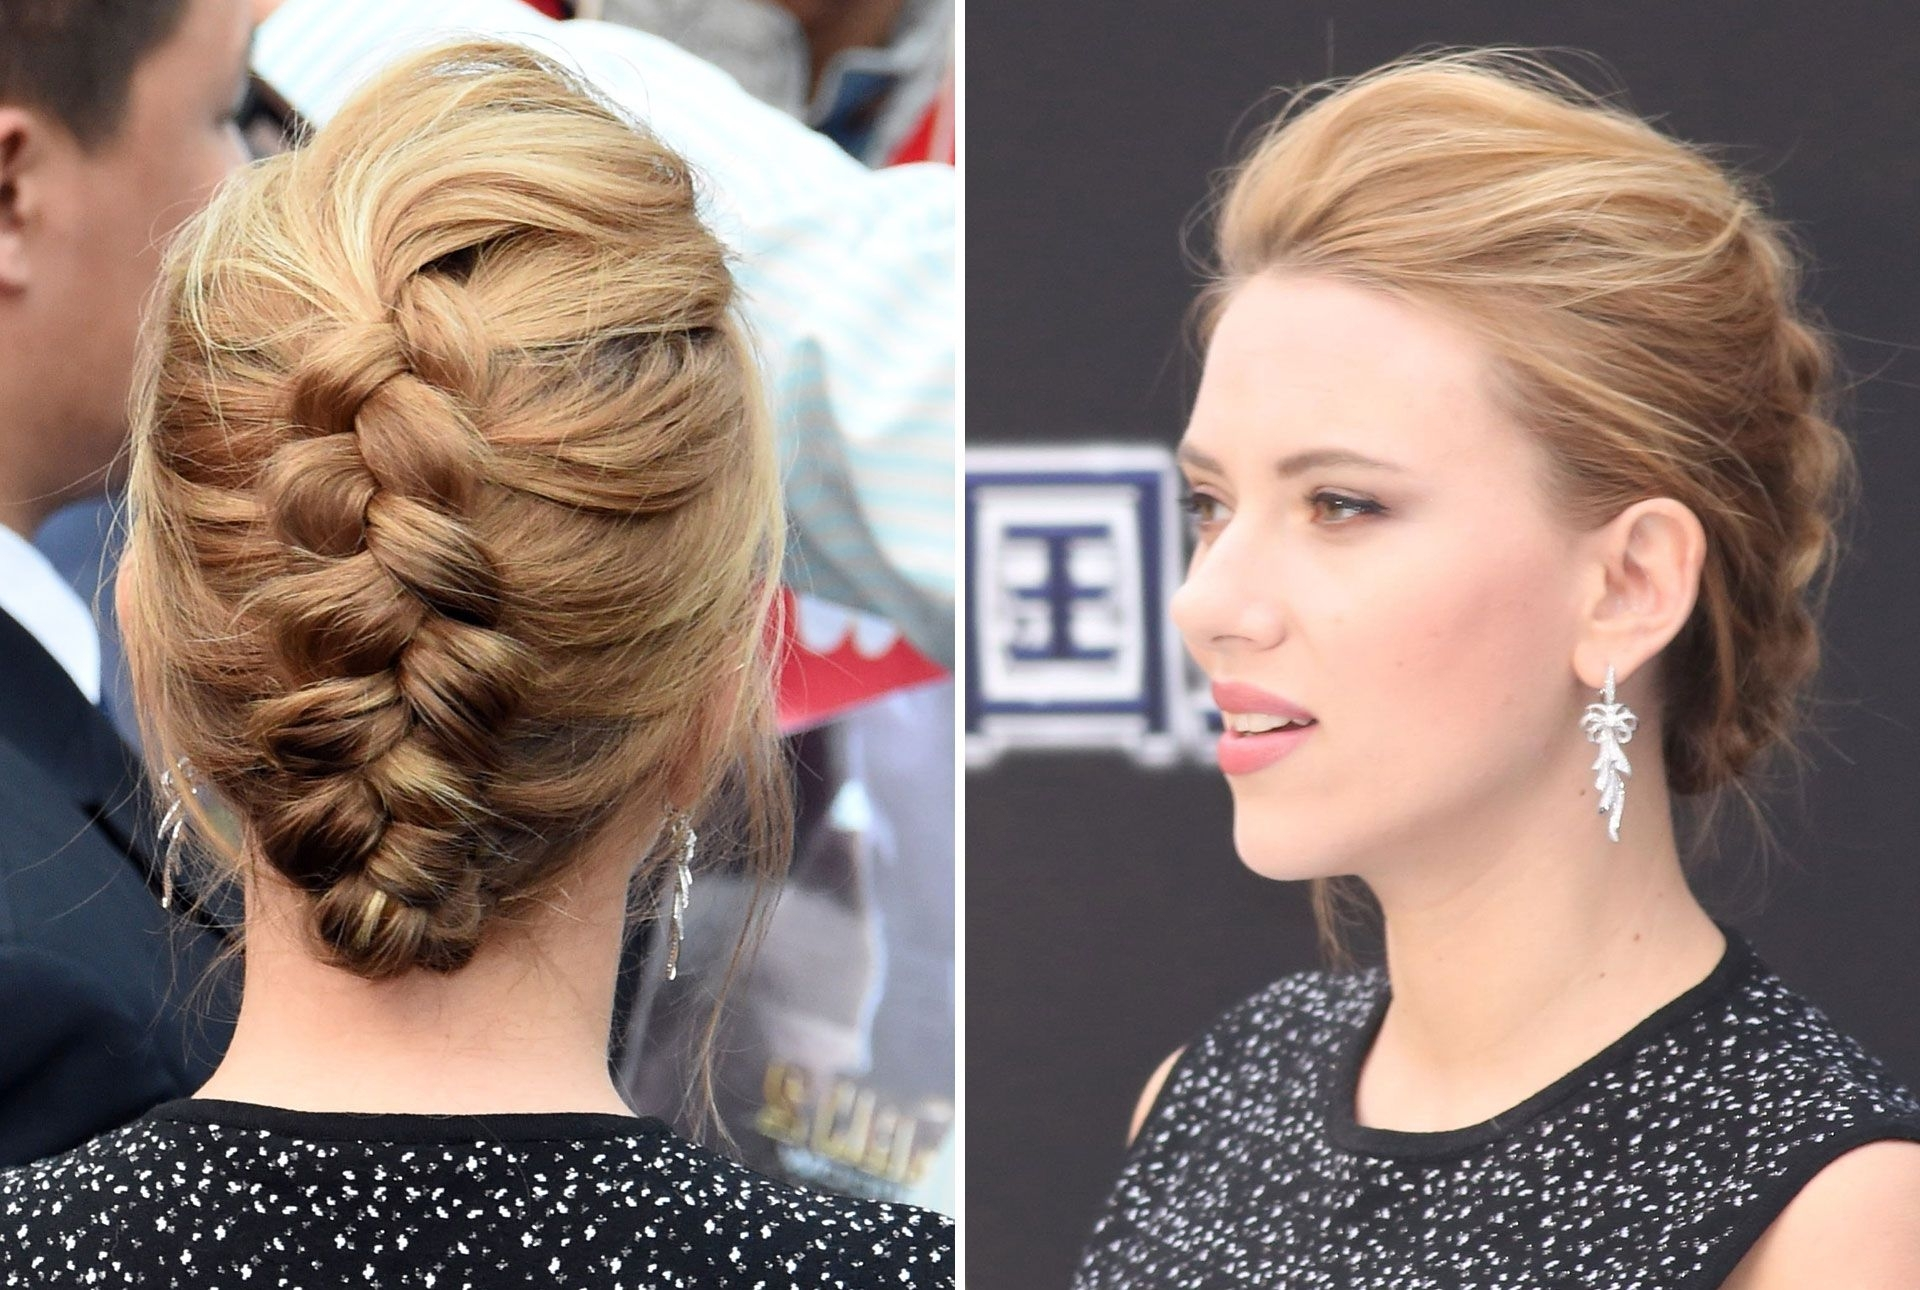 20 Easy Wedding Guest Hairstyles – Best Hair Ideas For Wedding Guests Within Updo Hairstyles For Black Tie Event (View 2 of 15)